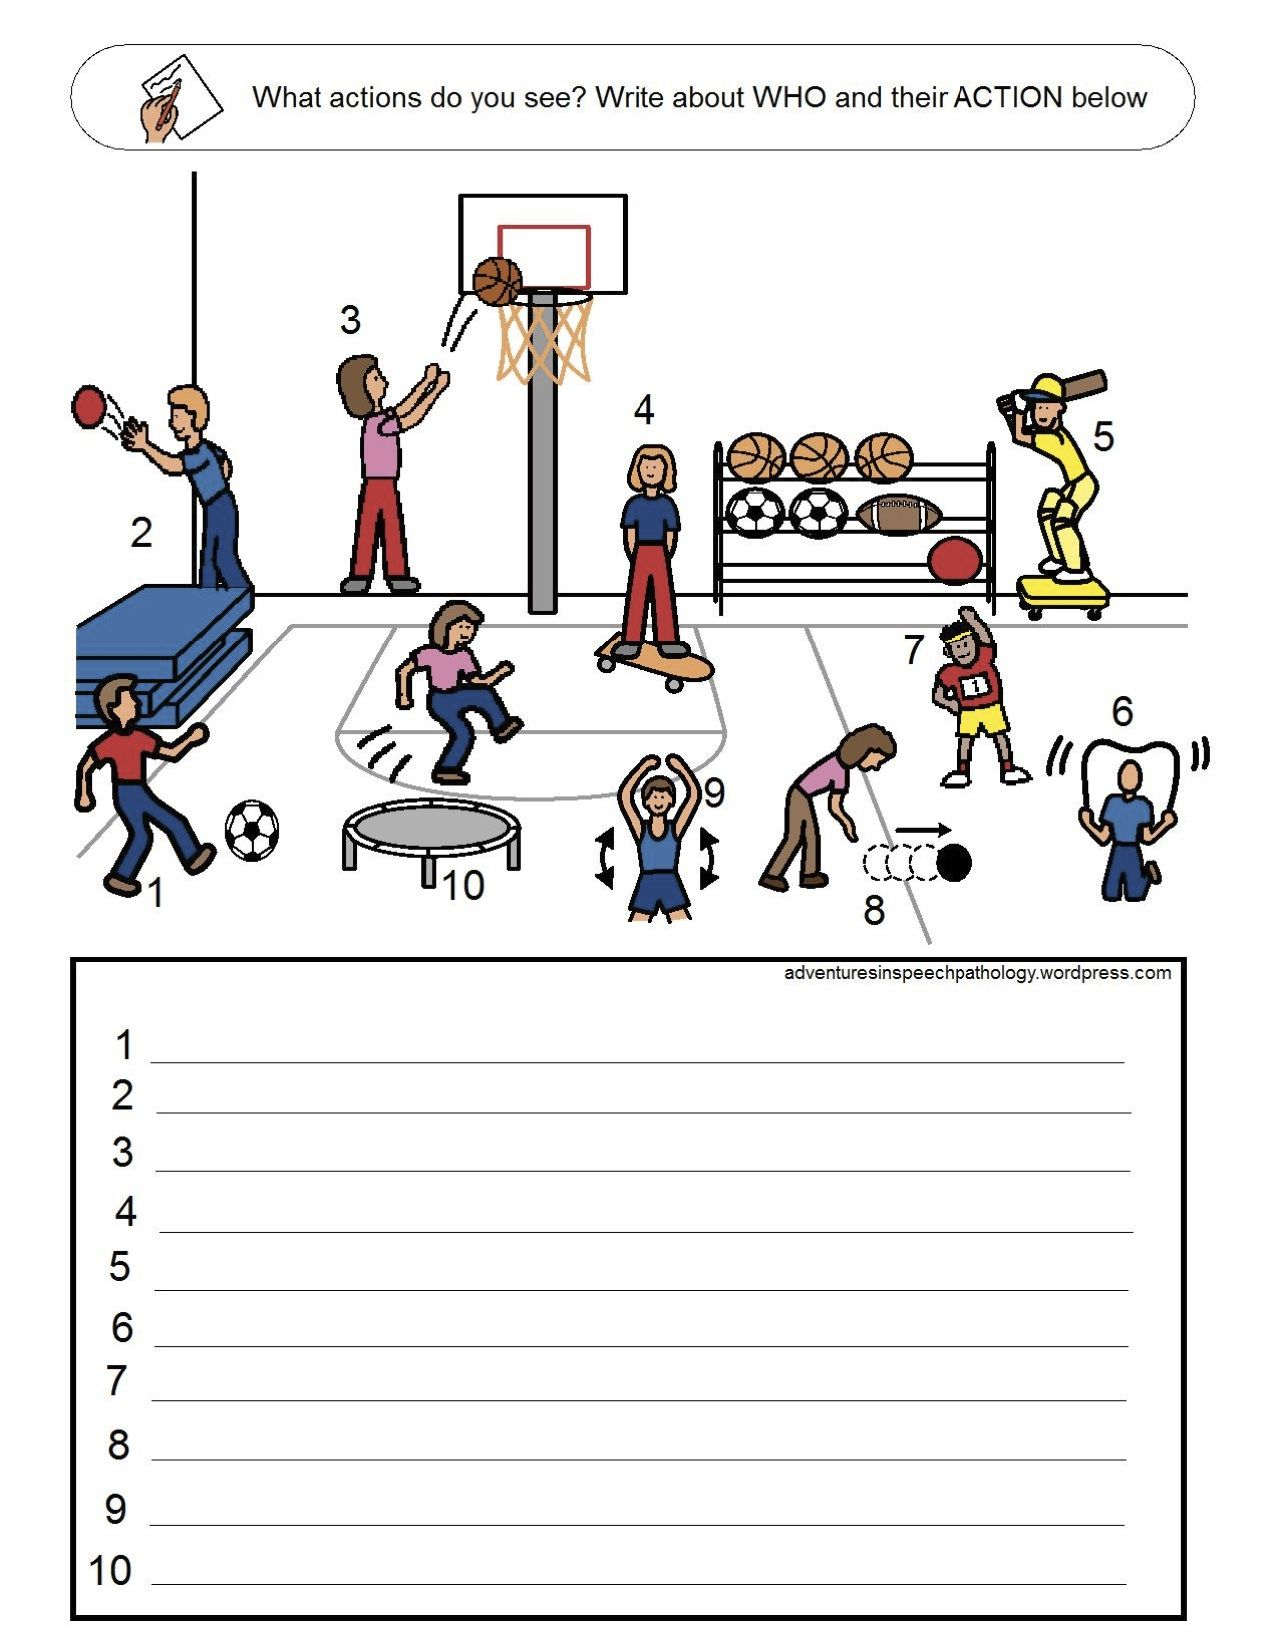 Subject and Verb Loaded Worksheets-Set 4 from Adventures in Speech  Pathology. Pinned by